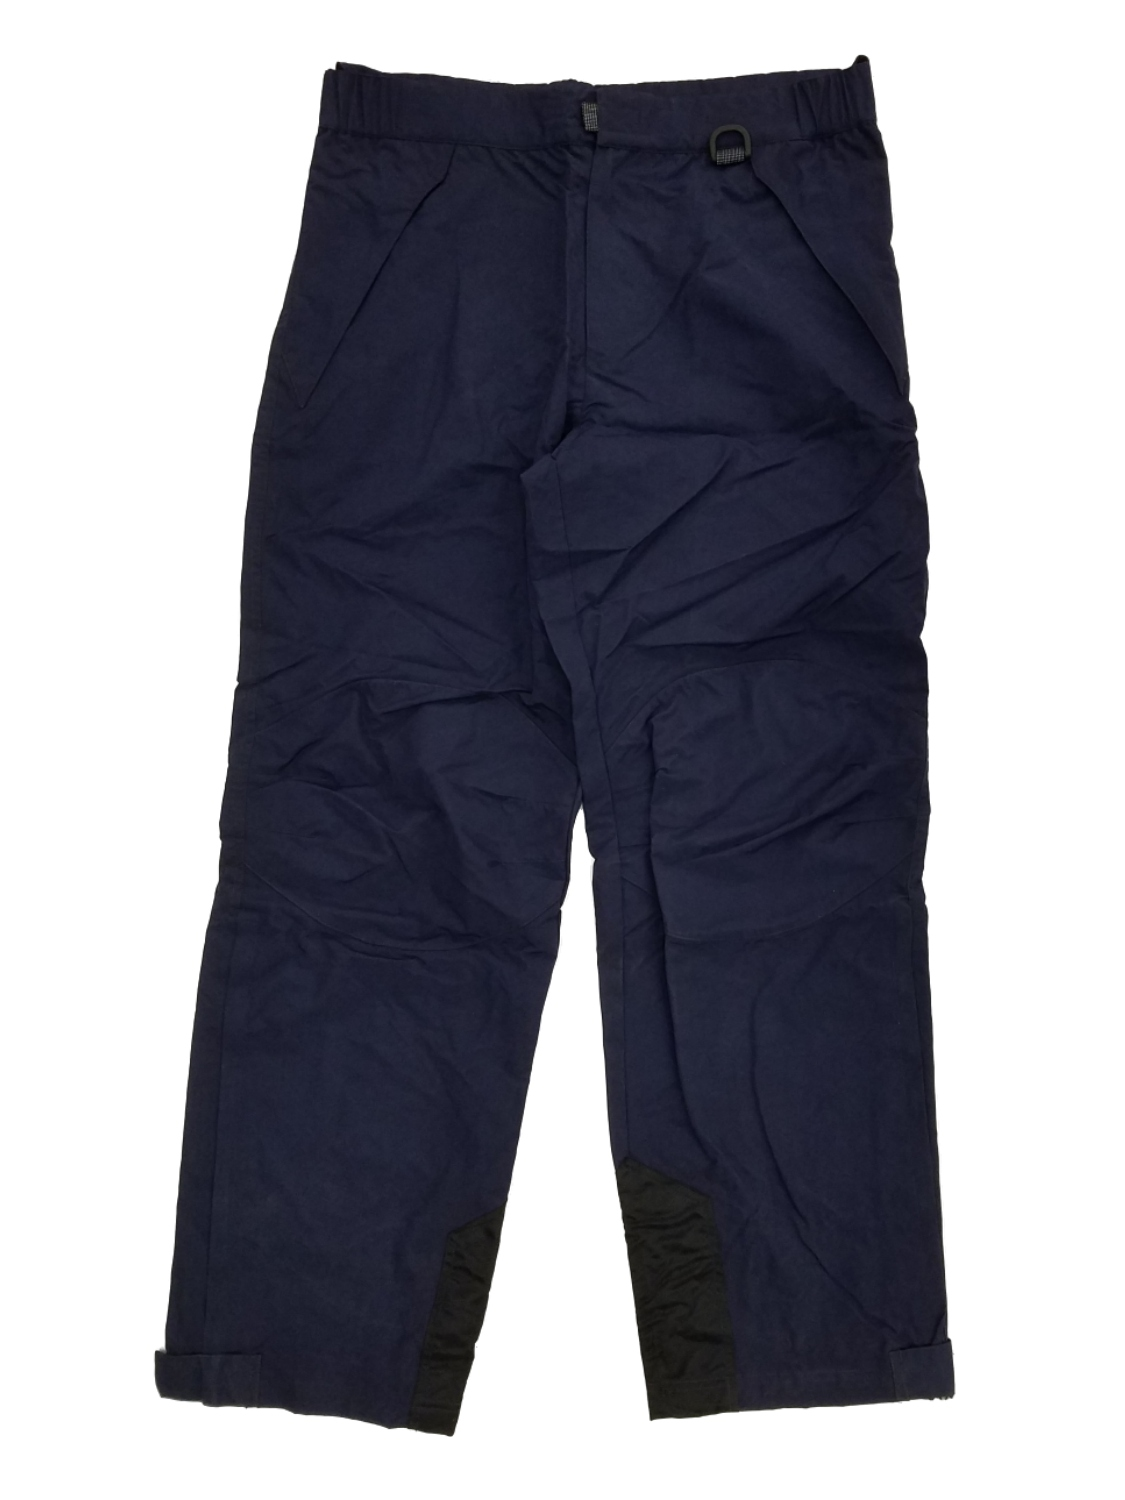 Mens Navy Blue Waterproof Breathable Reinforced Knee Skii Snowboard Pants